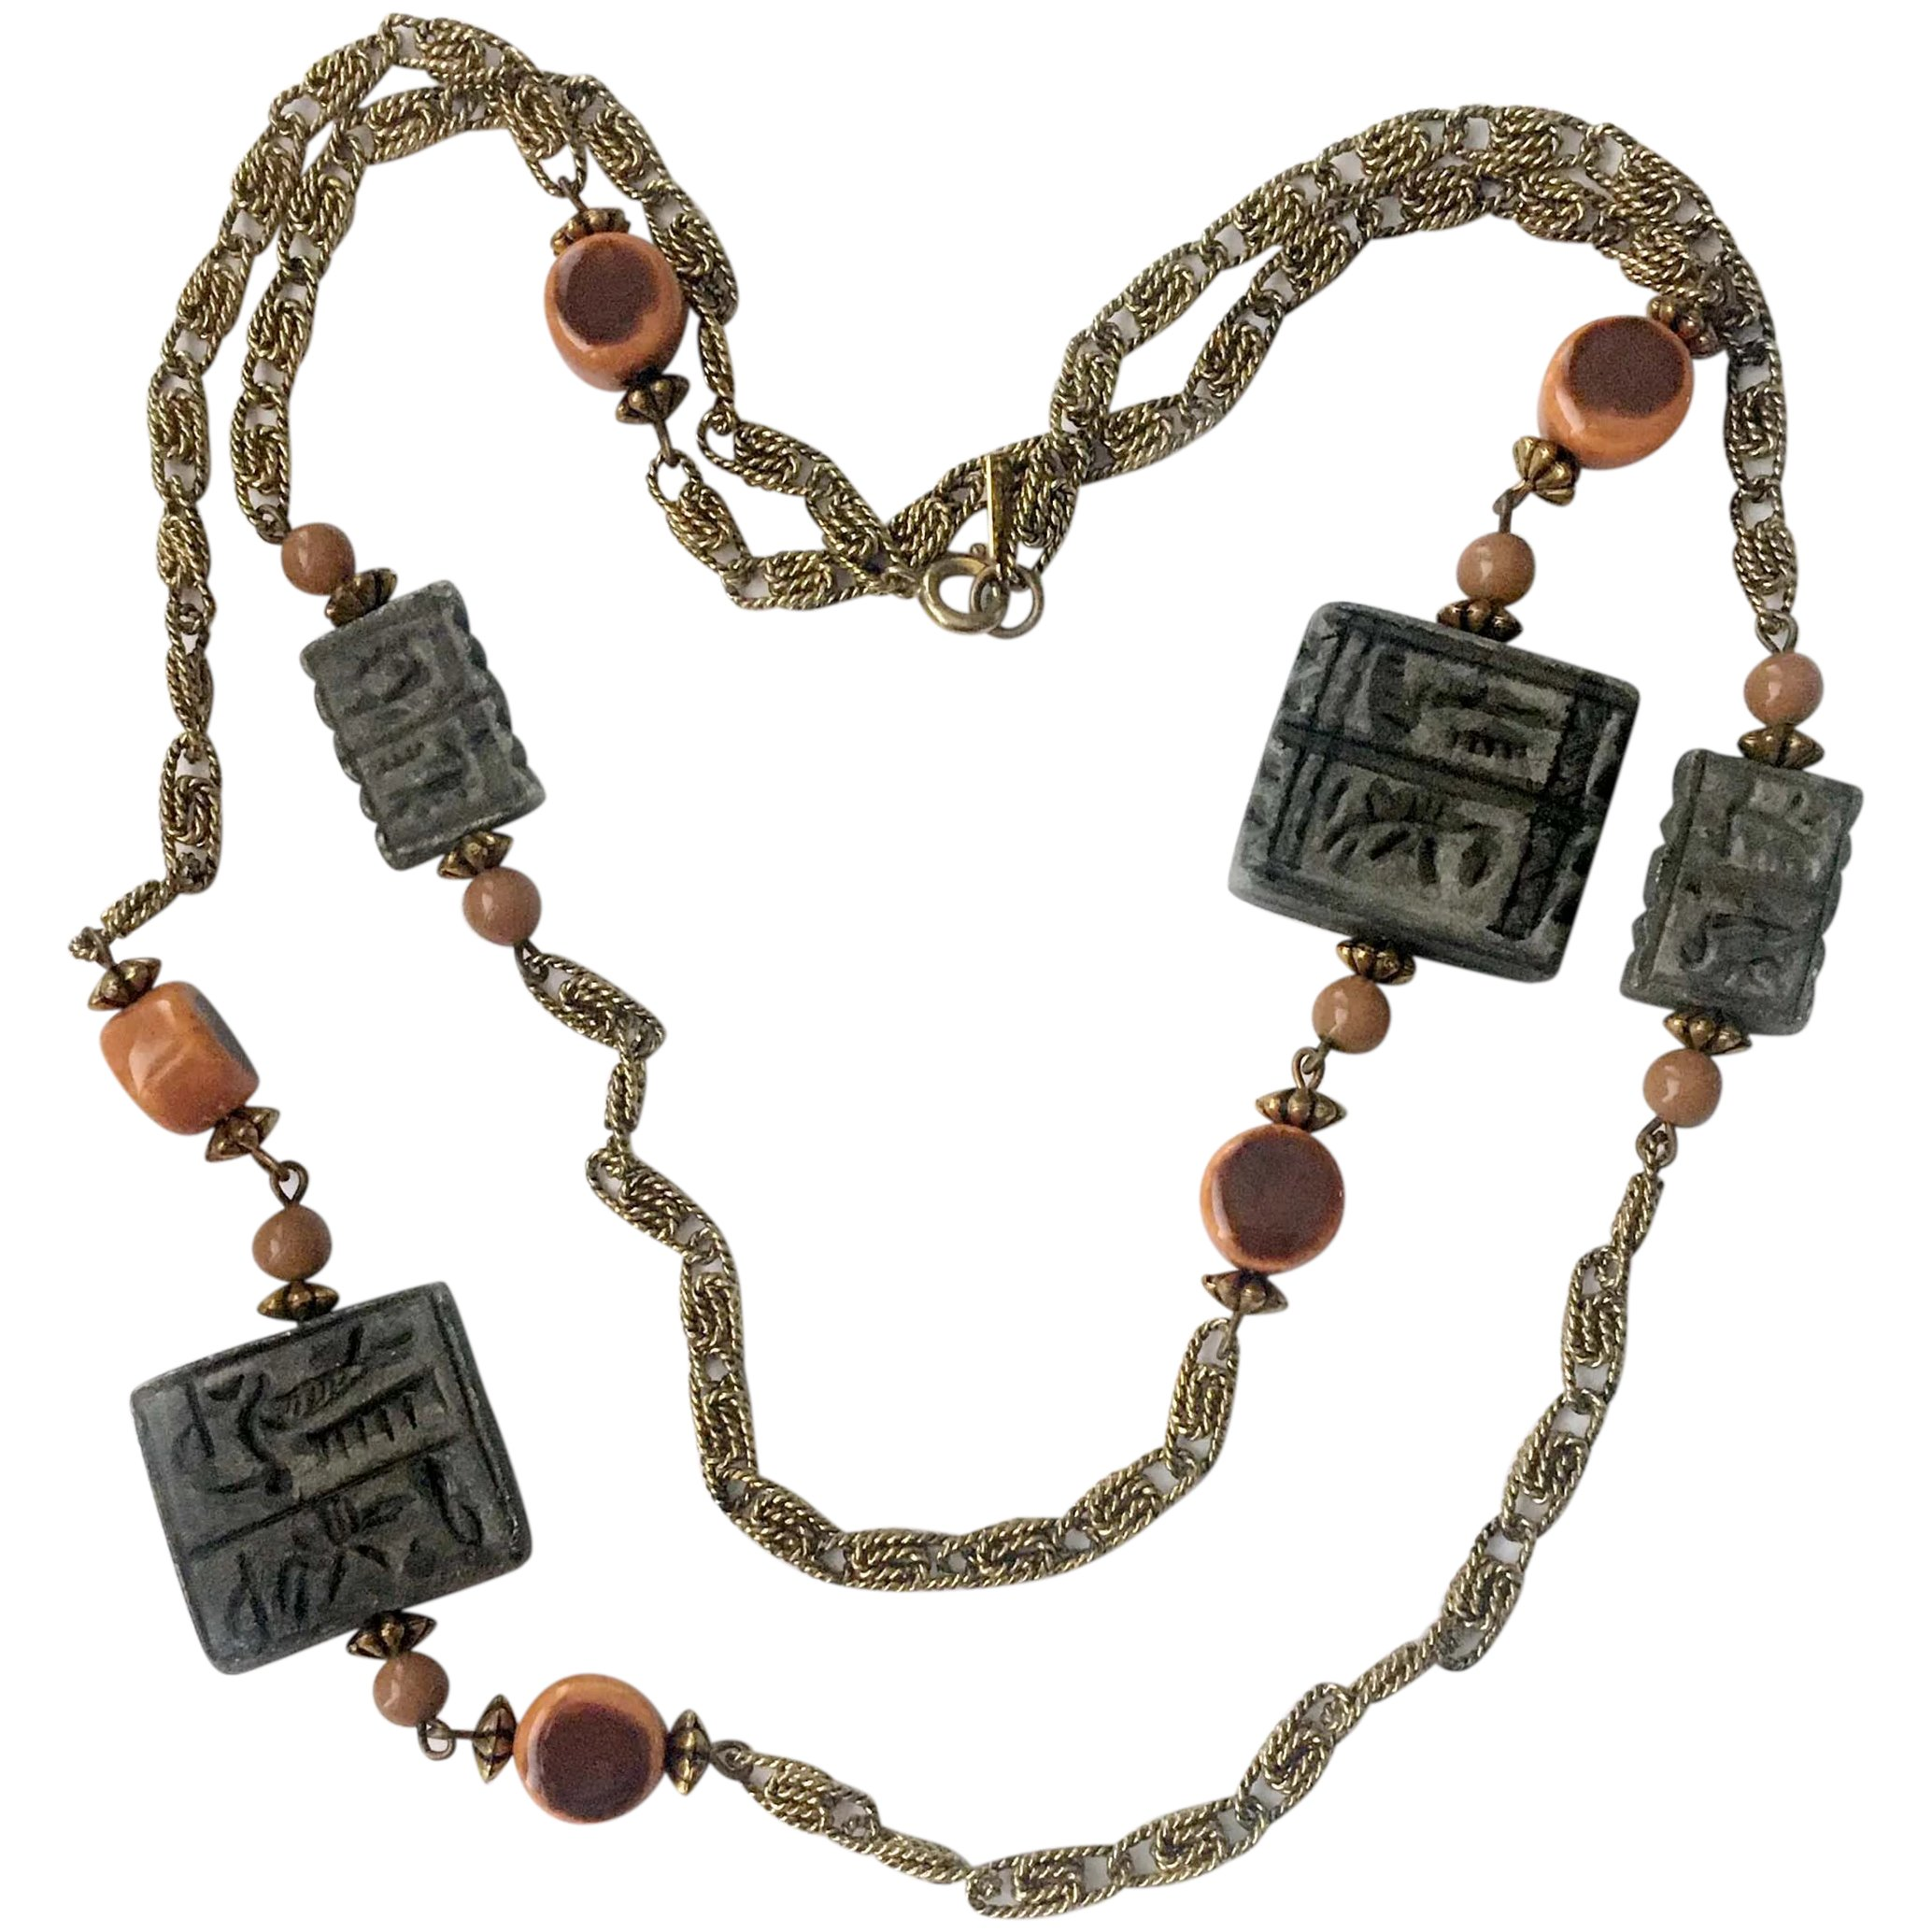 Carnegie Rare Egyptian Revival Hieroglyph And Stone Beads Necklace Bellstarvintage Ruby Lane